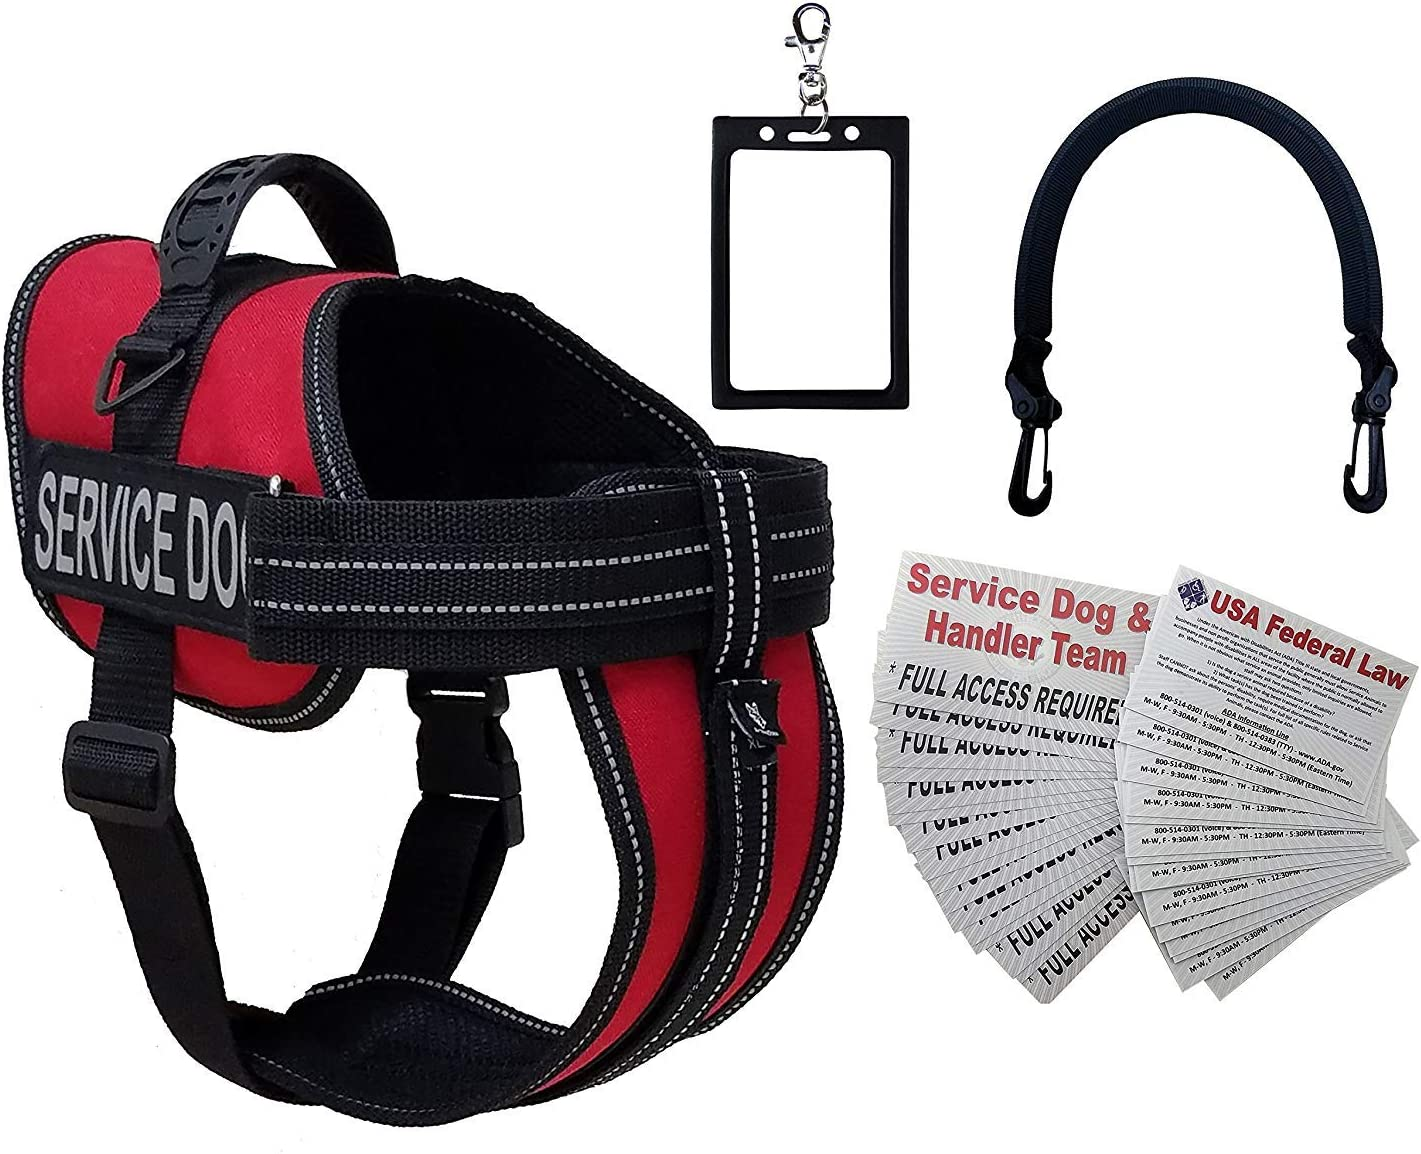 Activedogs Service Dog Vest Harness Bridge Clip-on Discount is also underway New arrival + Handle Free